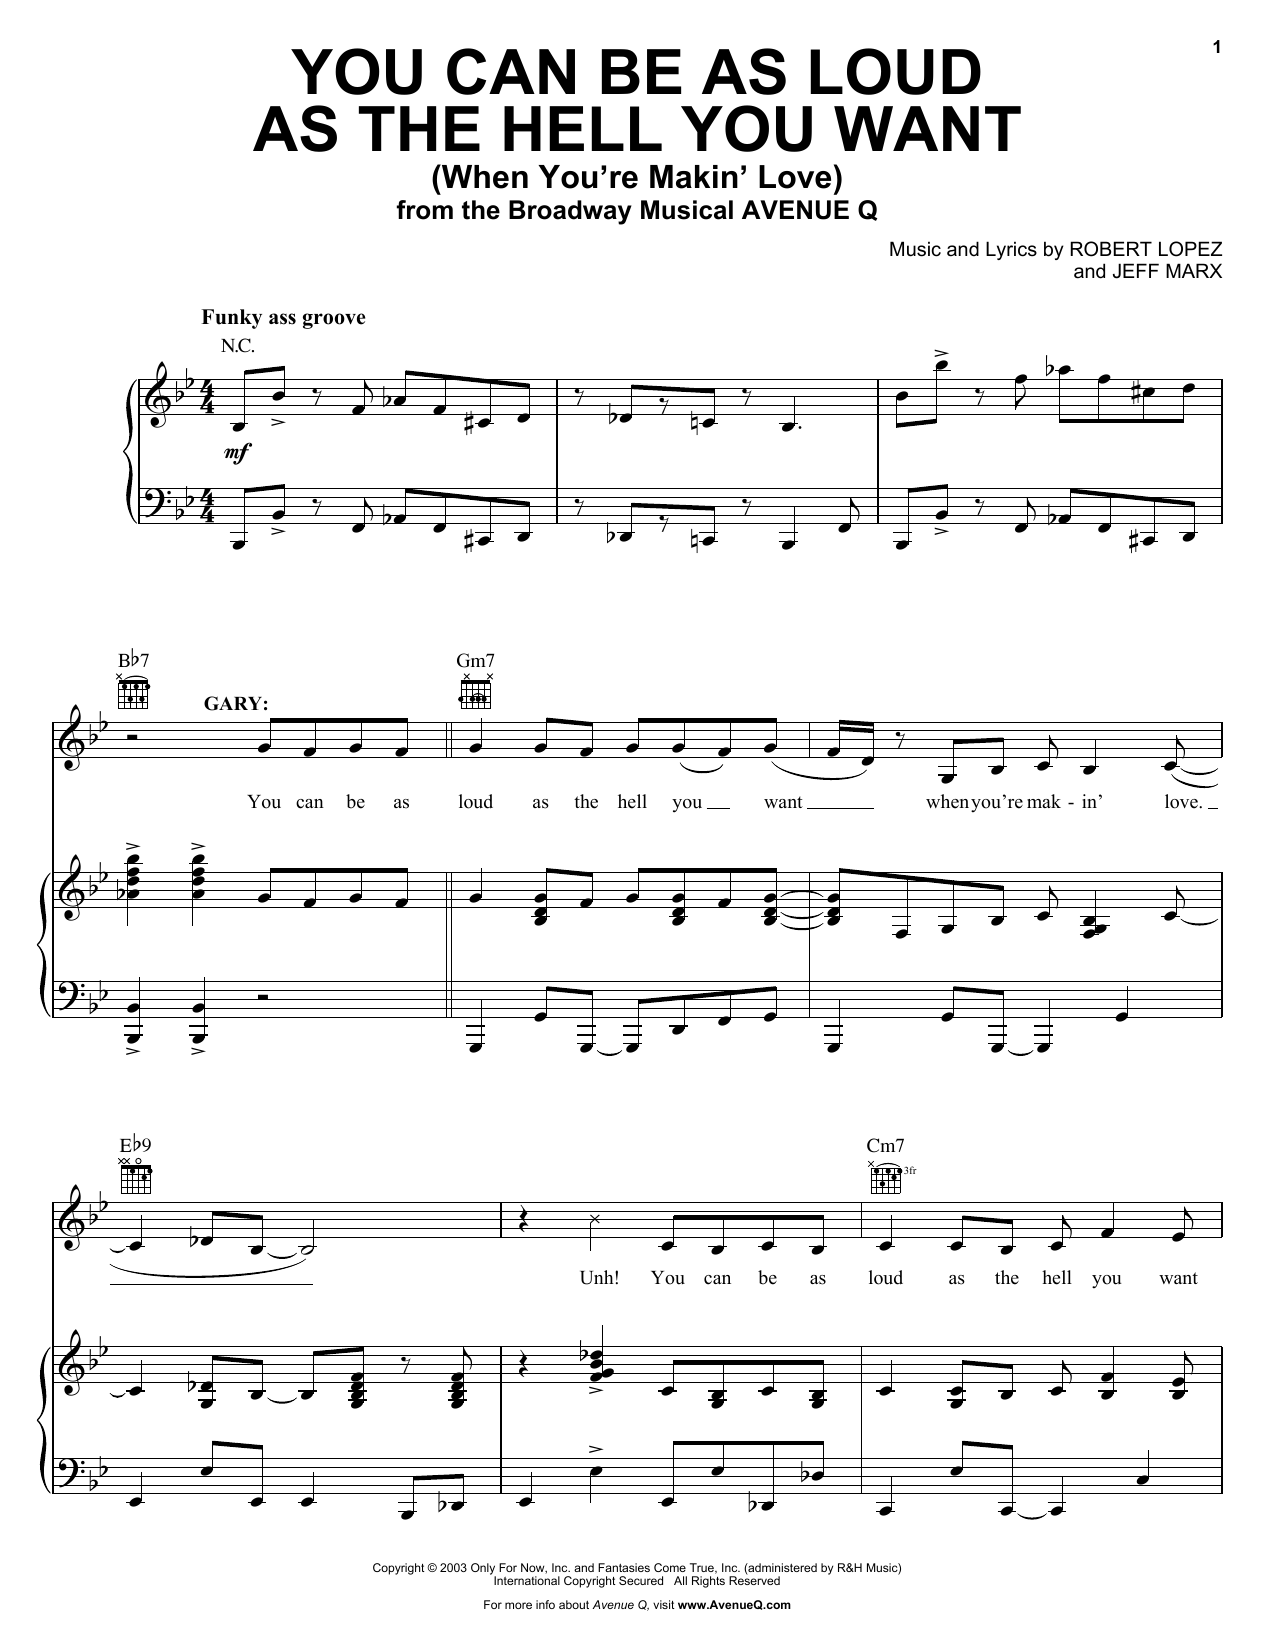 You Can Be As Loud As The Hell You Want (When You're Makin' Love) Sheet Music